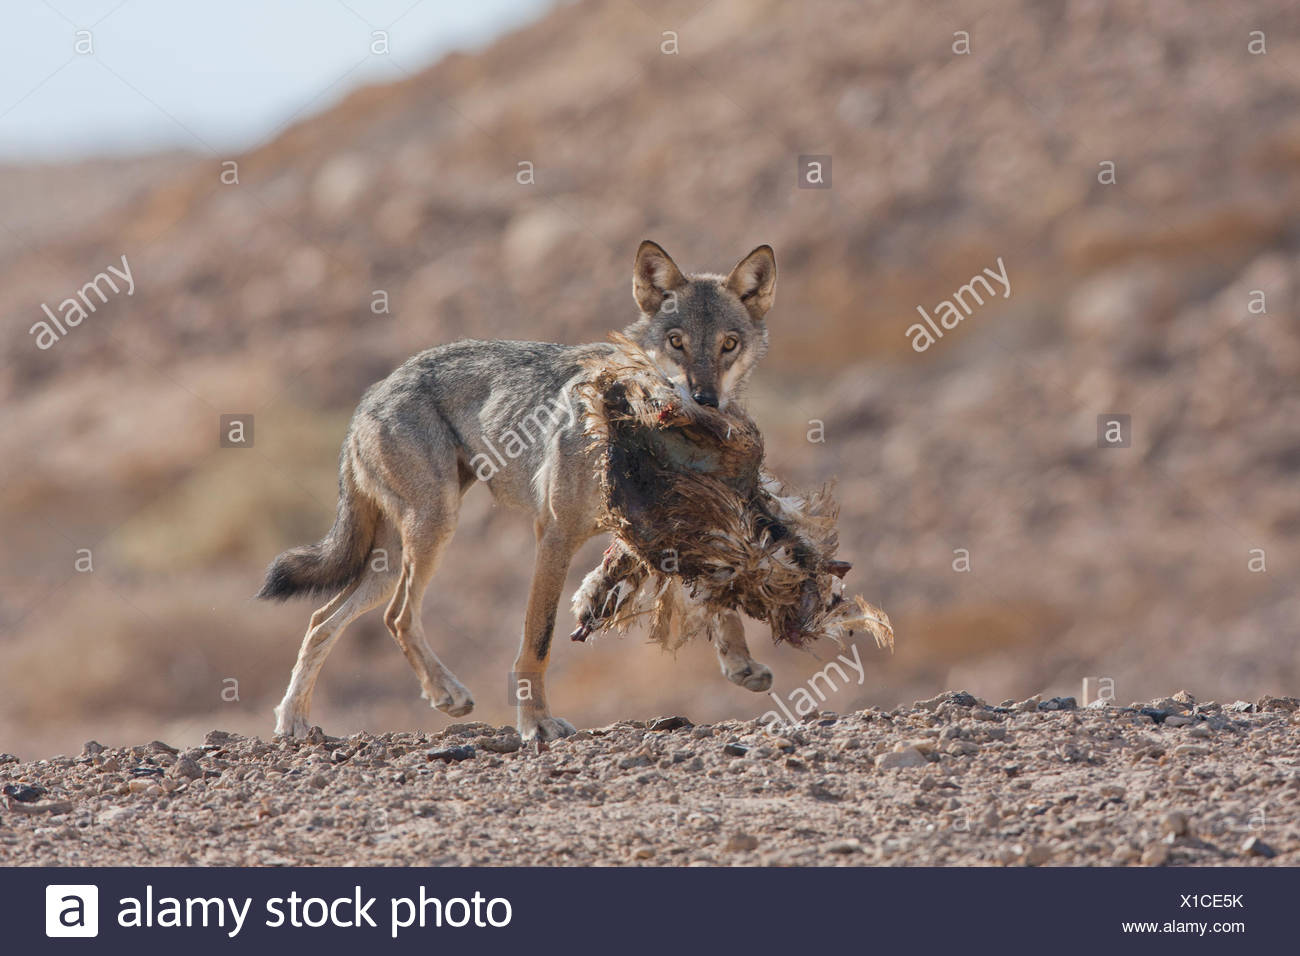 Arabian wolf (aka desert wolf Canis lupus arabs). with prey. This wolf is  subspecies of gray wolf. Photographed in Israel, Nege - Stock Image